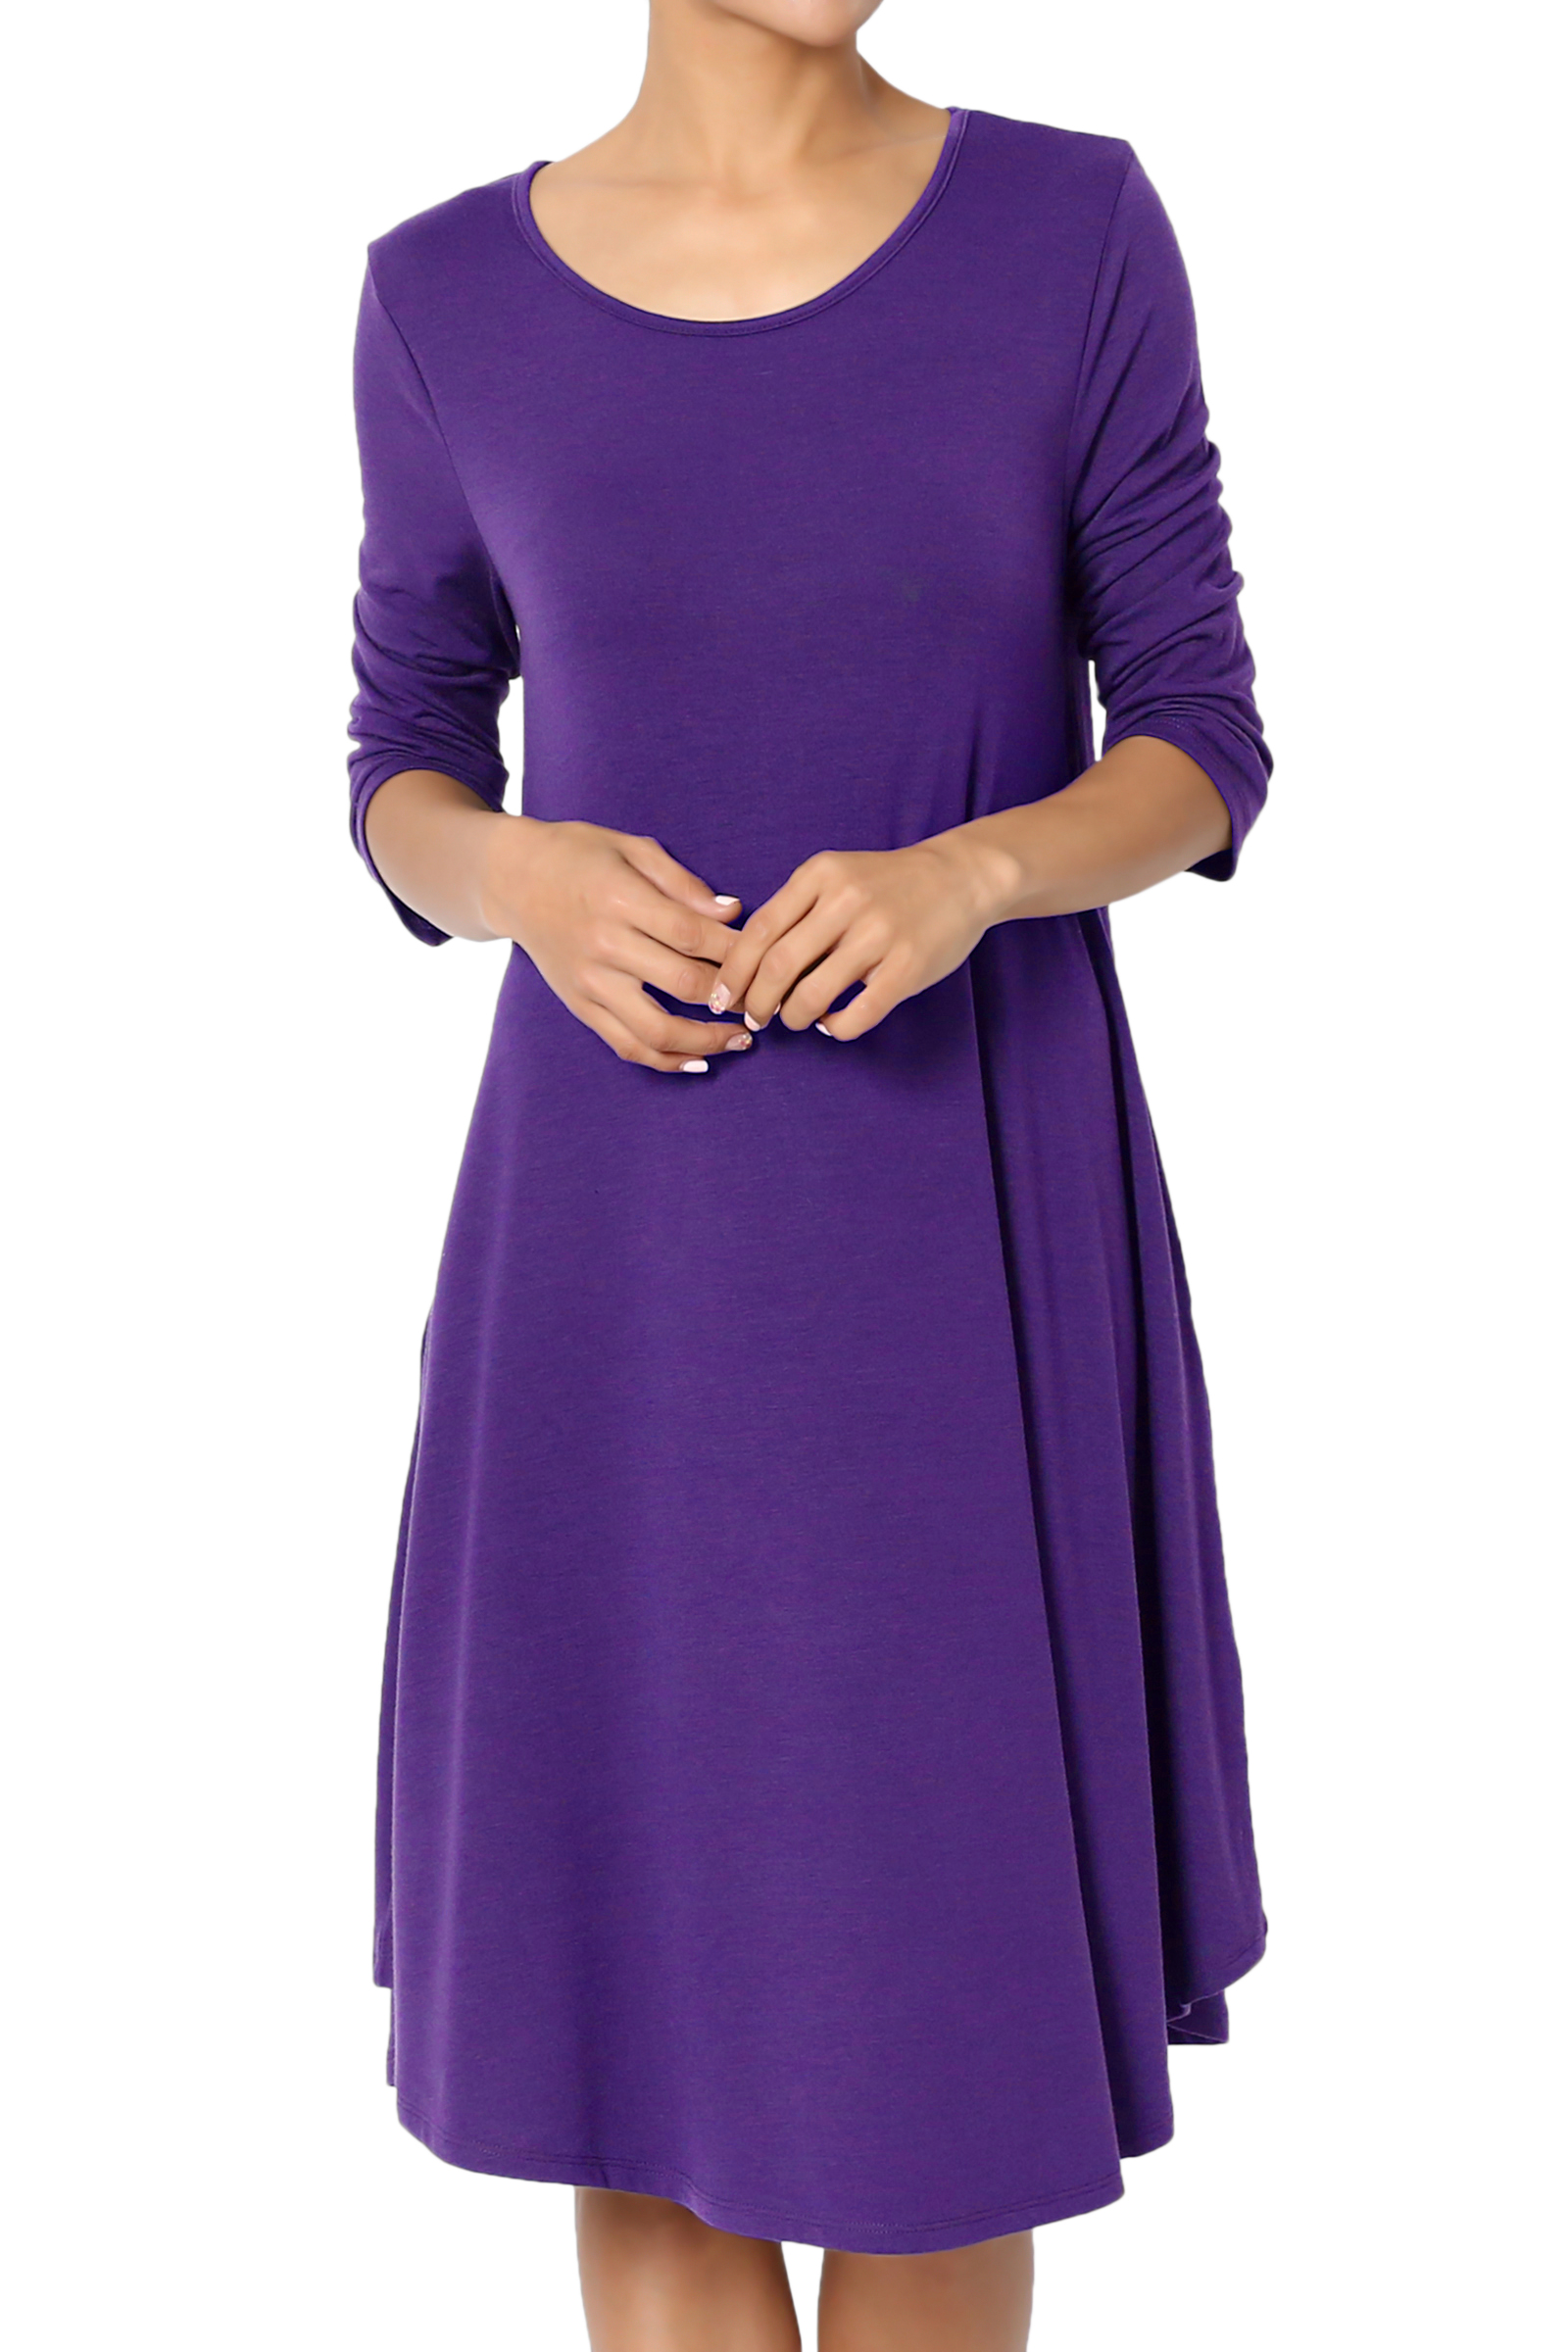 TheMogan Women's PLUS 3/4 Sleeve A-Line Flared Jersey Knit Pocket T-Shirt Dress